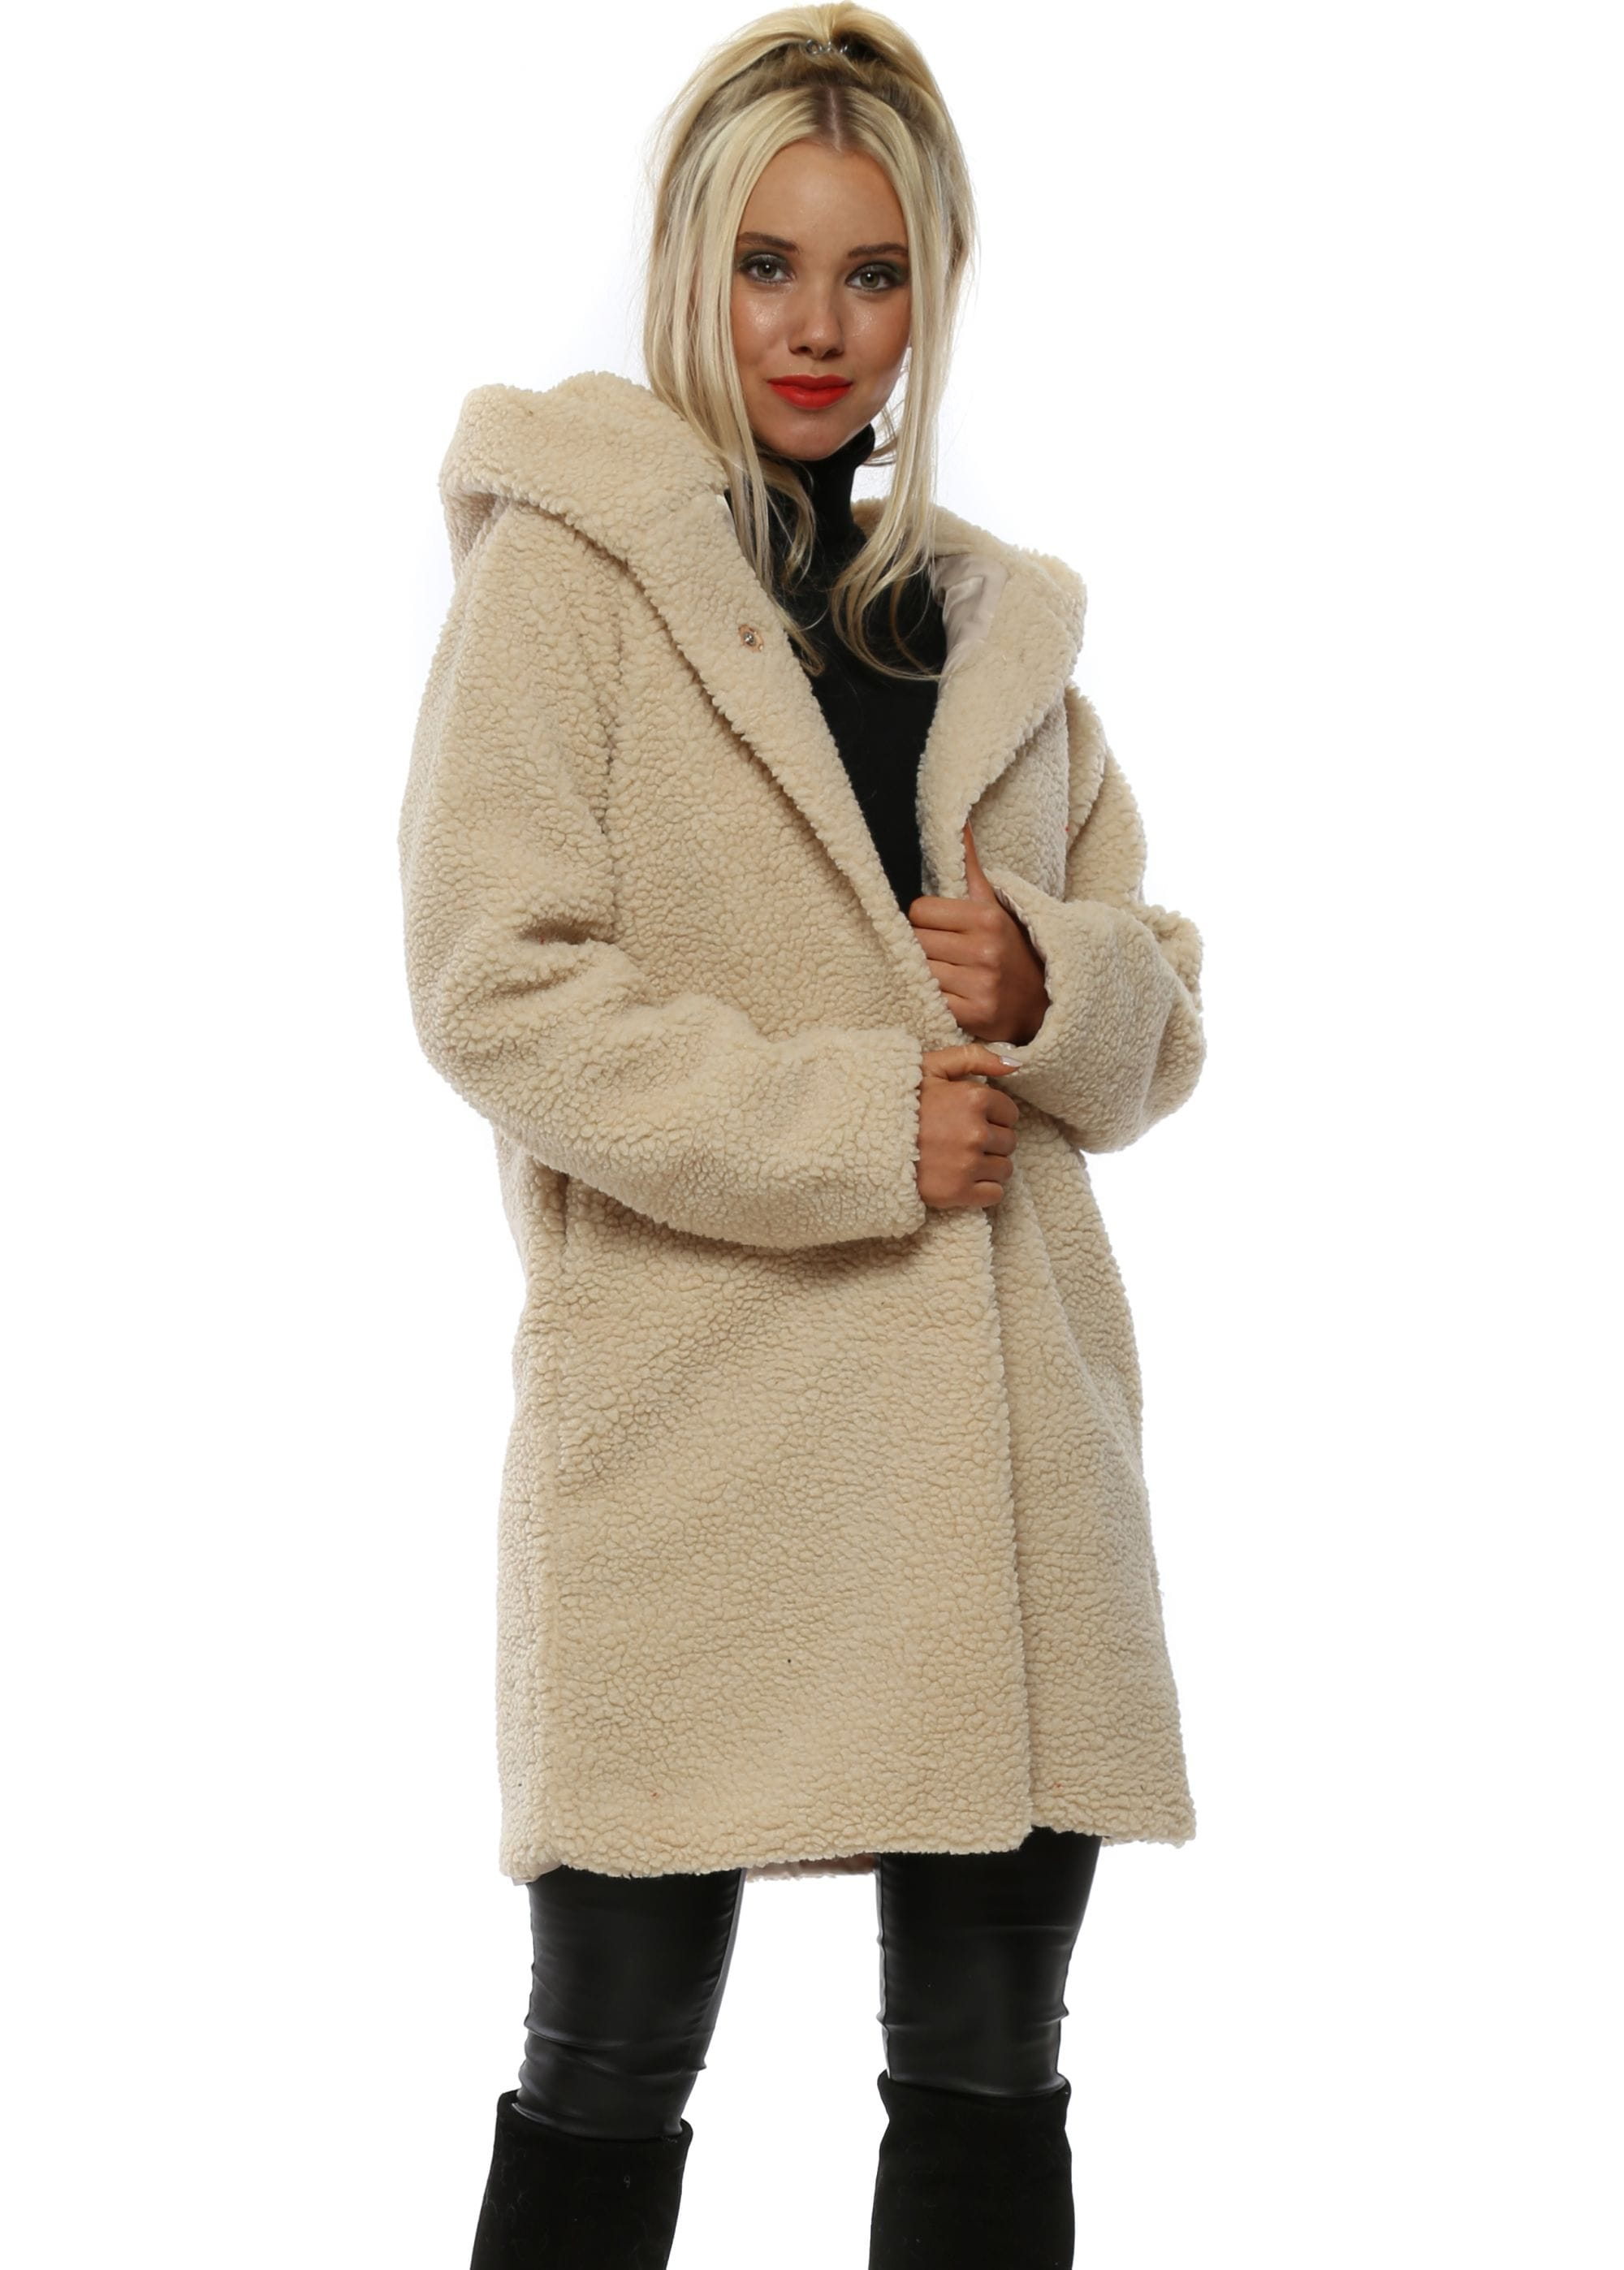 Cream Teddy Bear Hooded Coat by Angelique